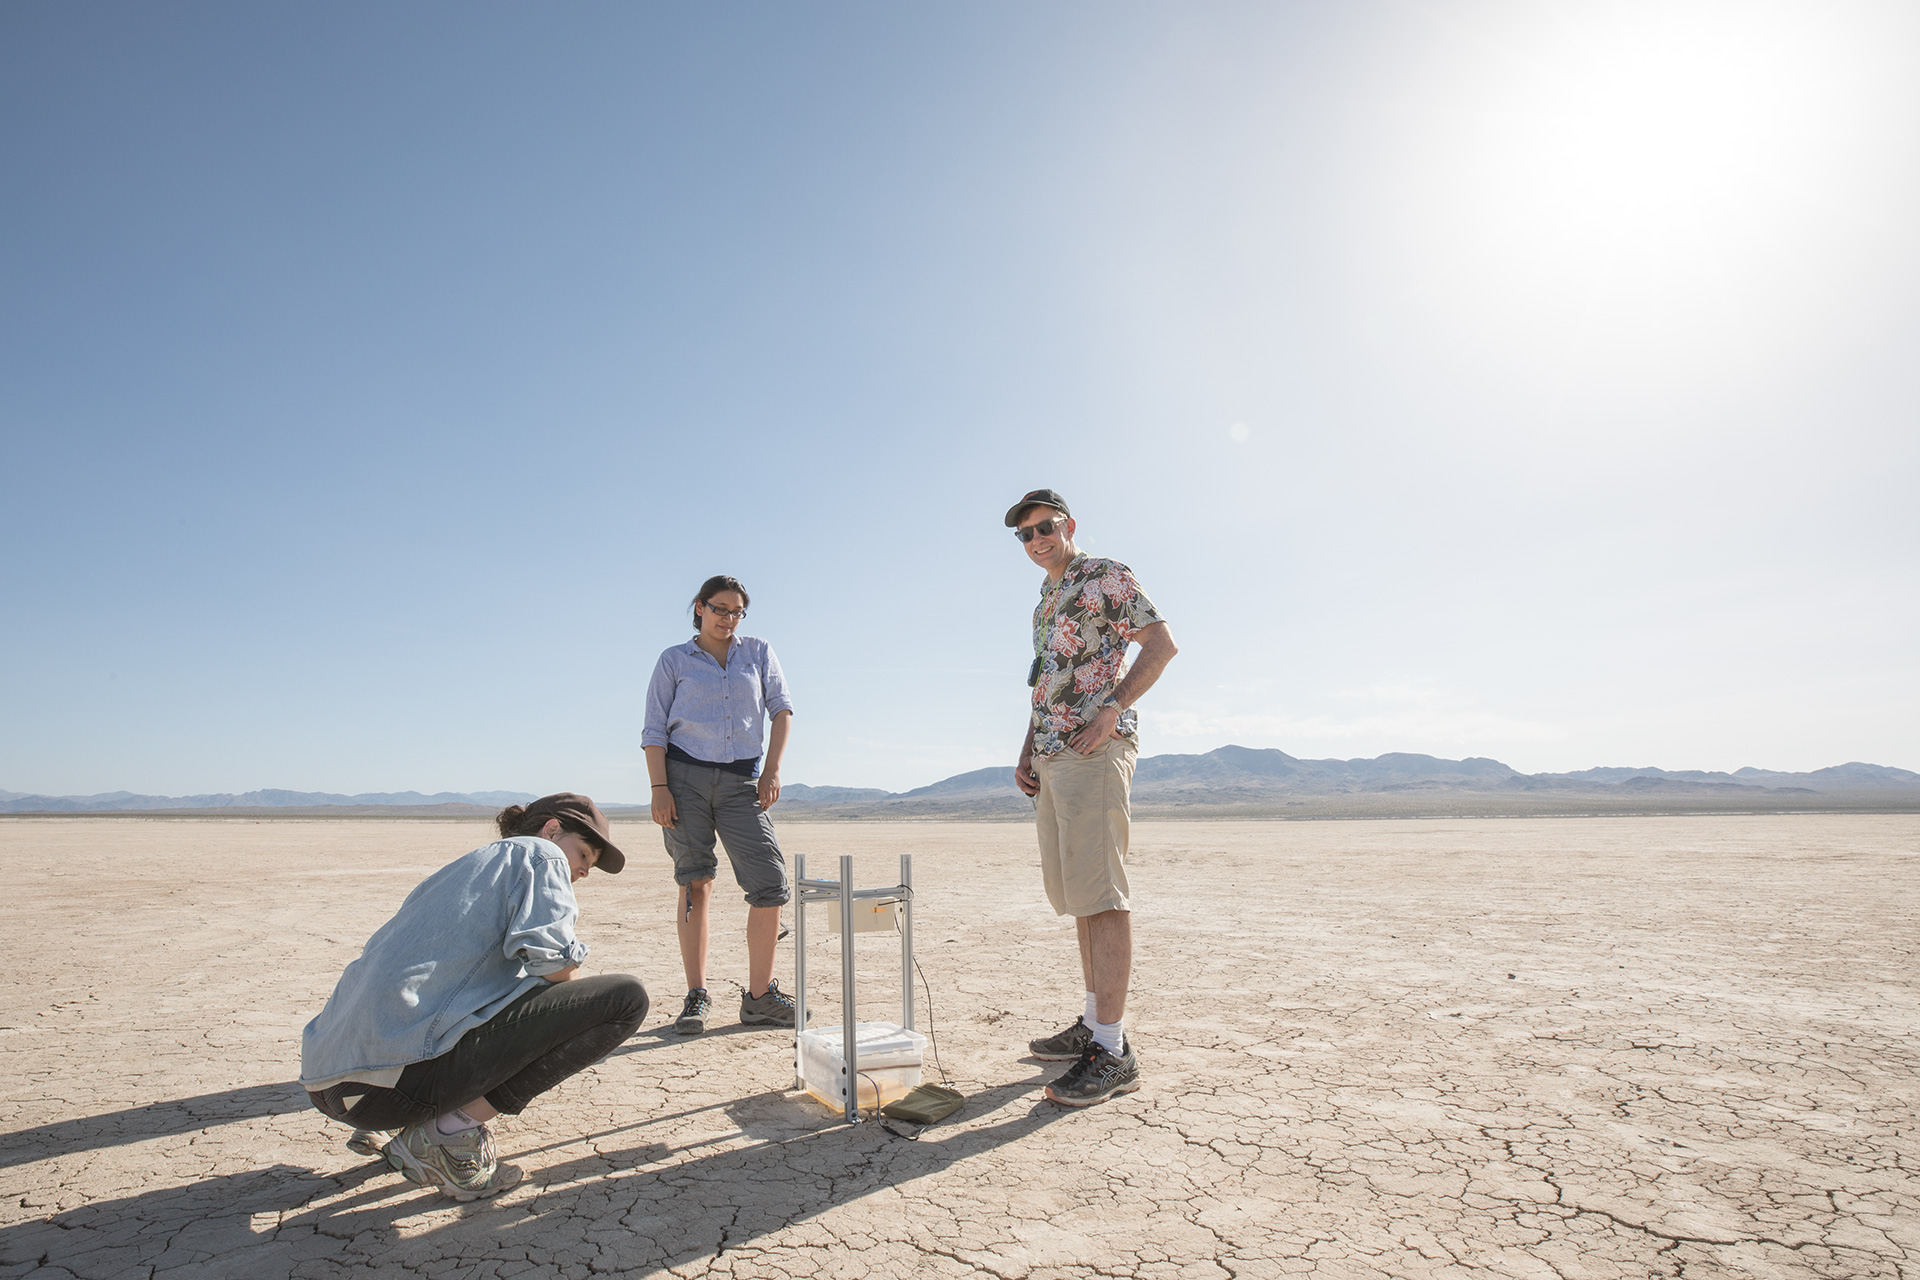 Our collaborators: Kate Leitch, Francesca Ponce, and Michael Dickinson, out on the playa, examining a fly trap.